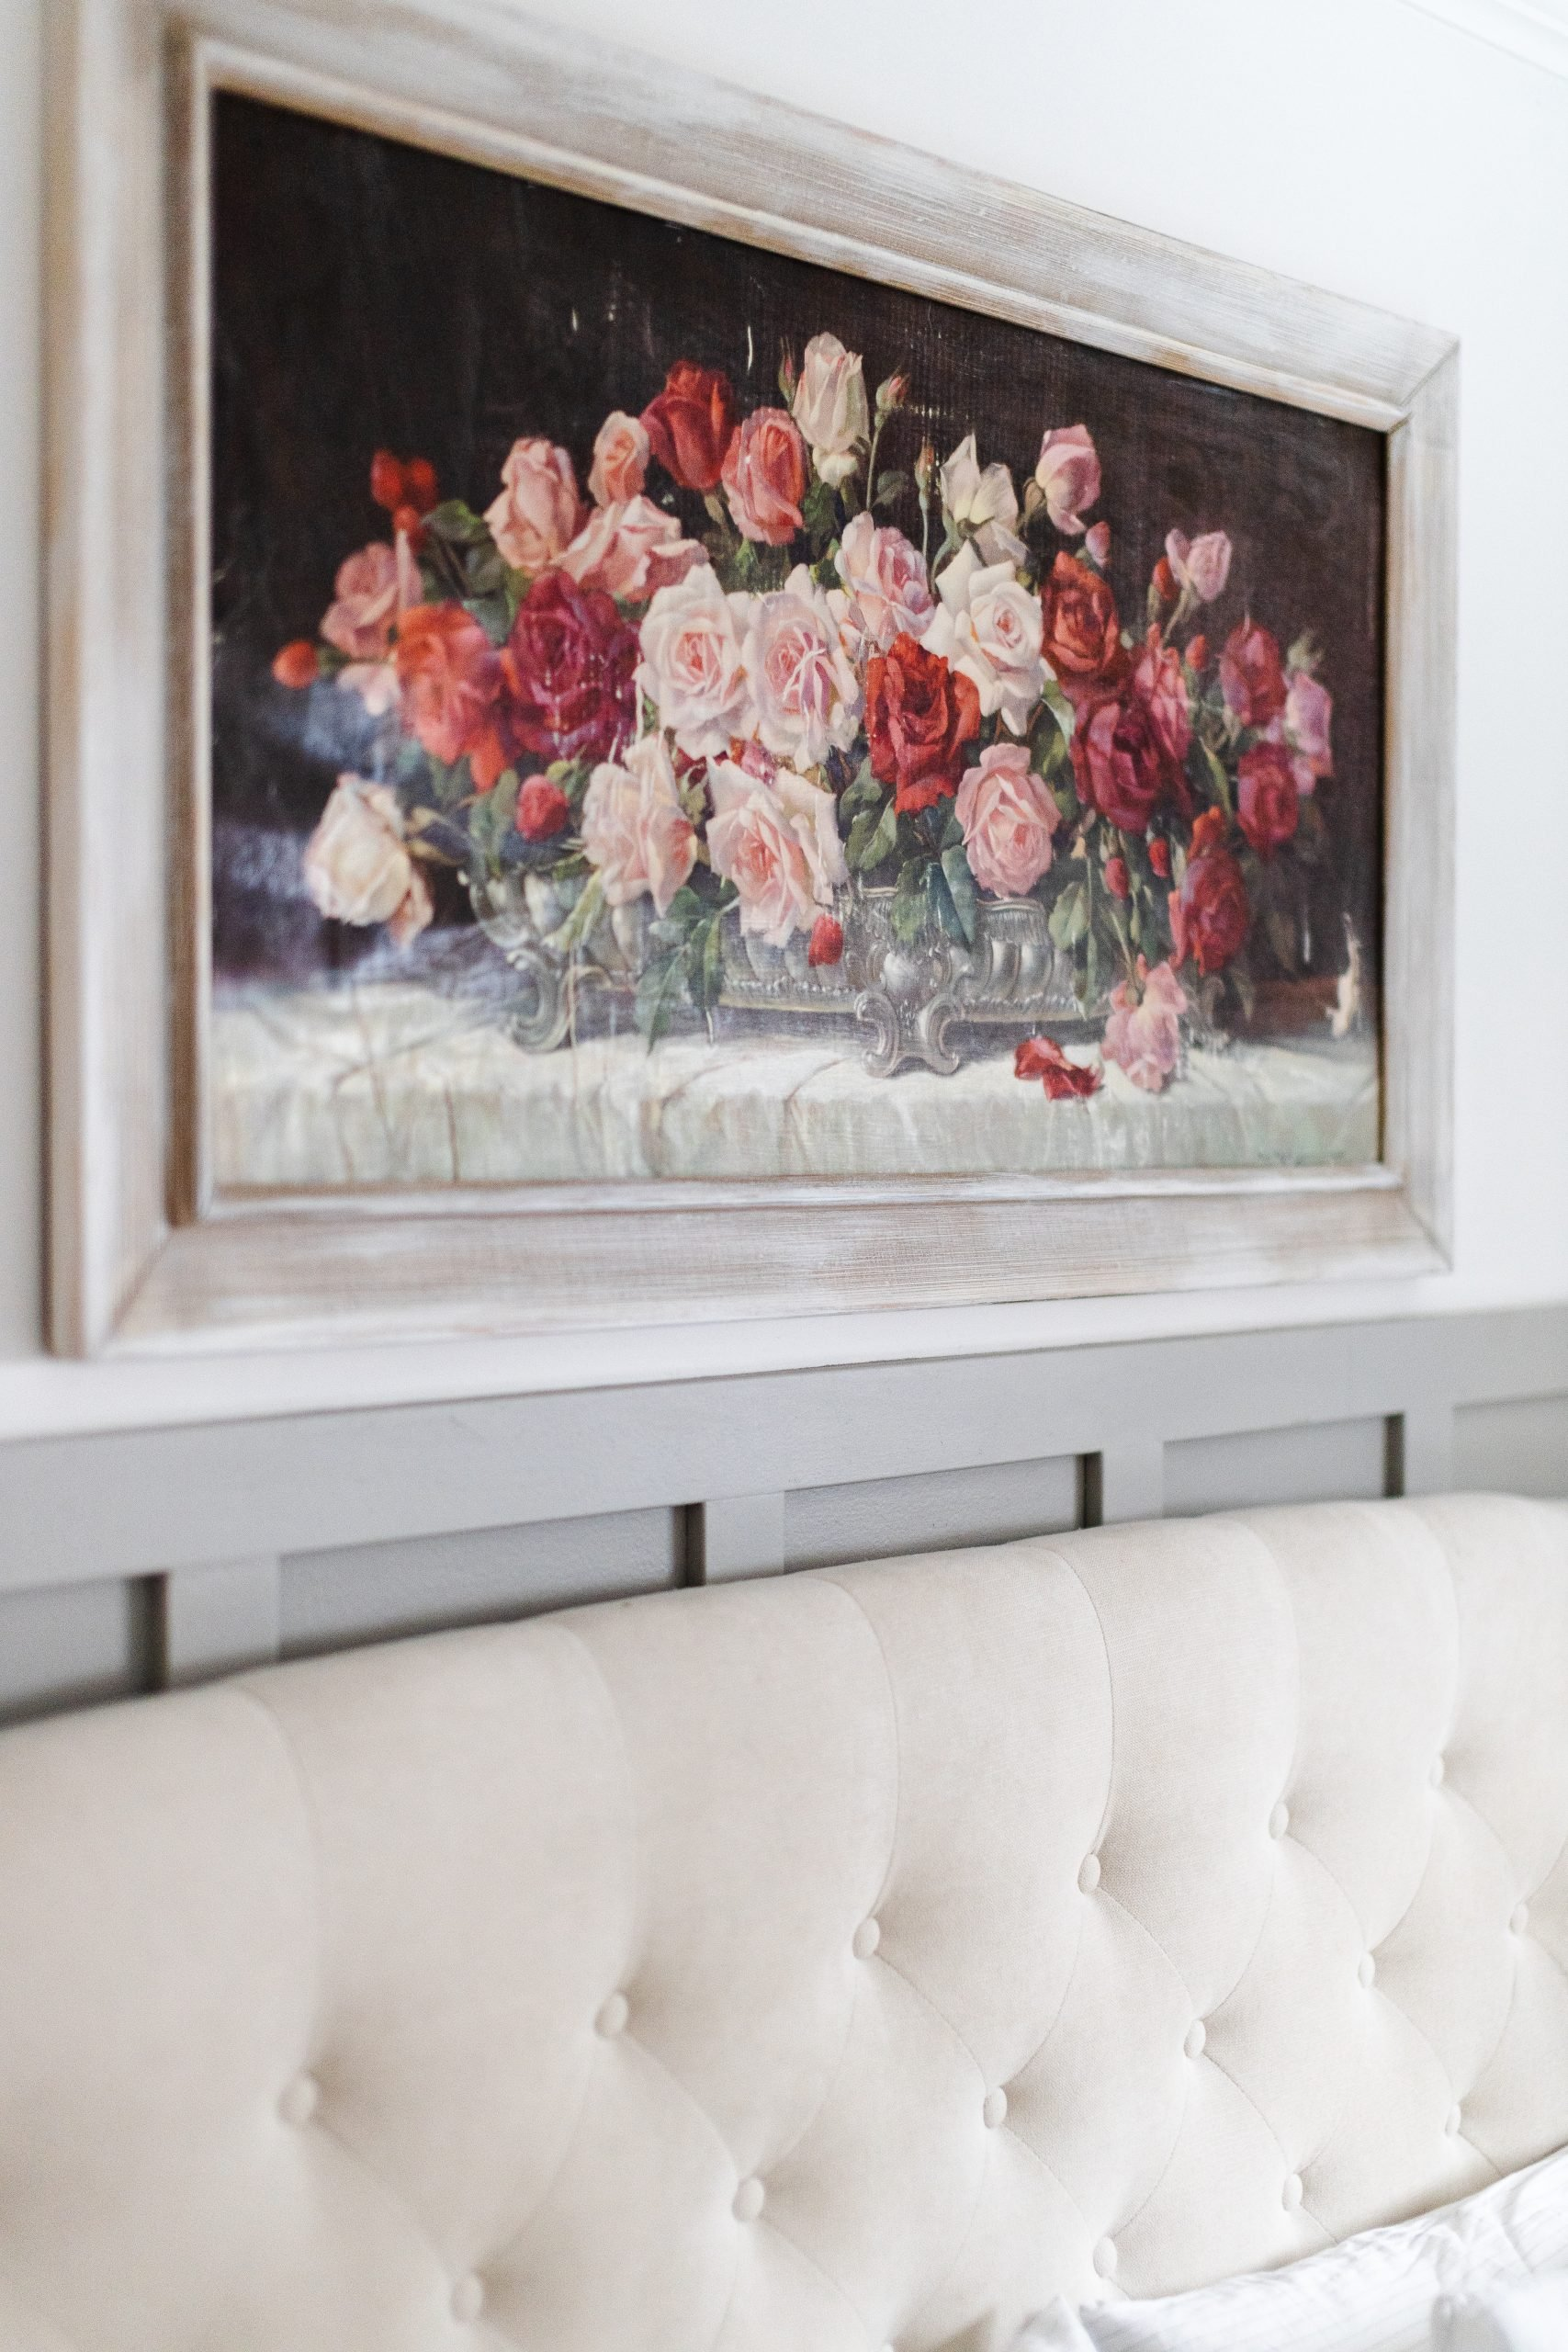 The Vintage Rose Painting That Almost Didn't Make it. How I turned a 30 dollar thrifted piece of art into a gorgeous trendy masterpiece!